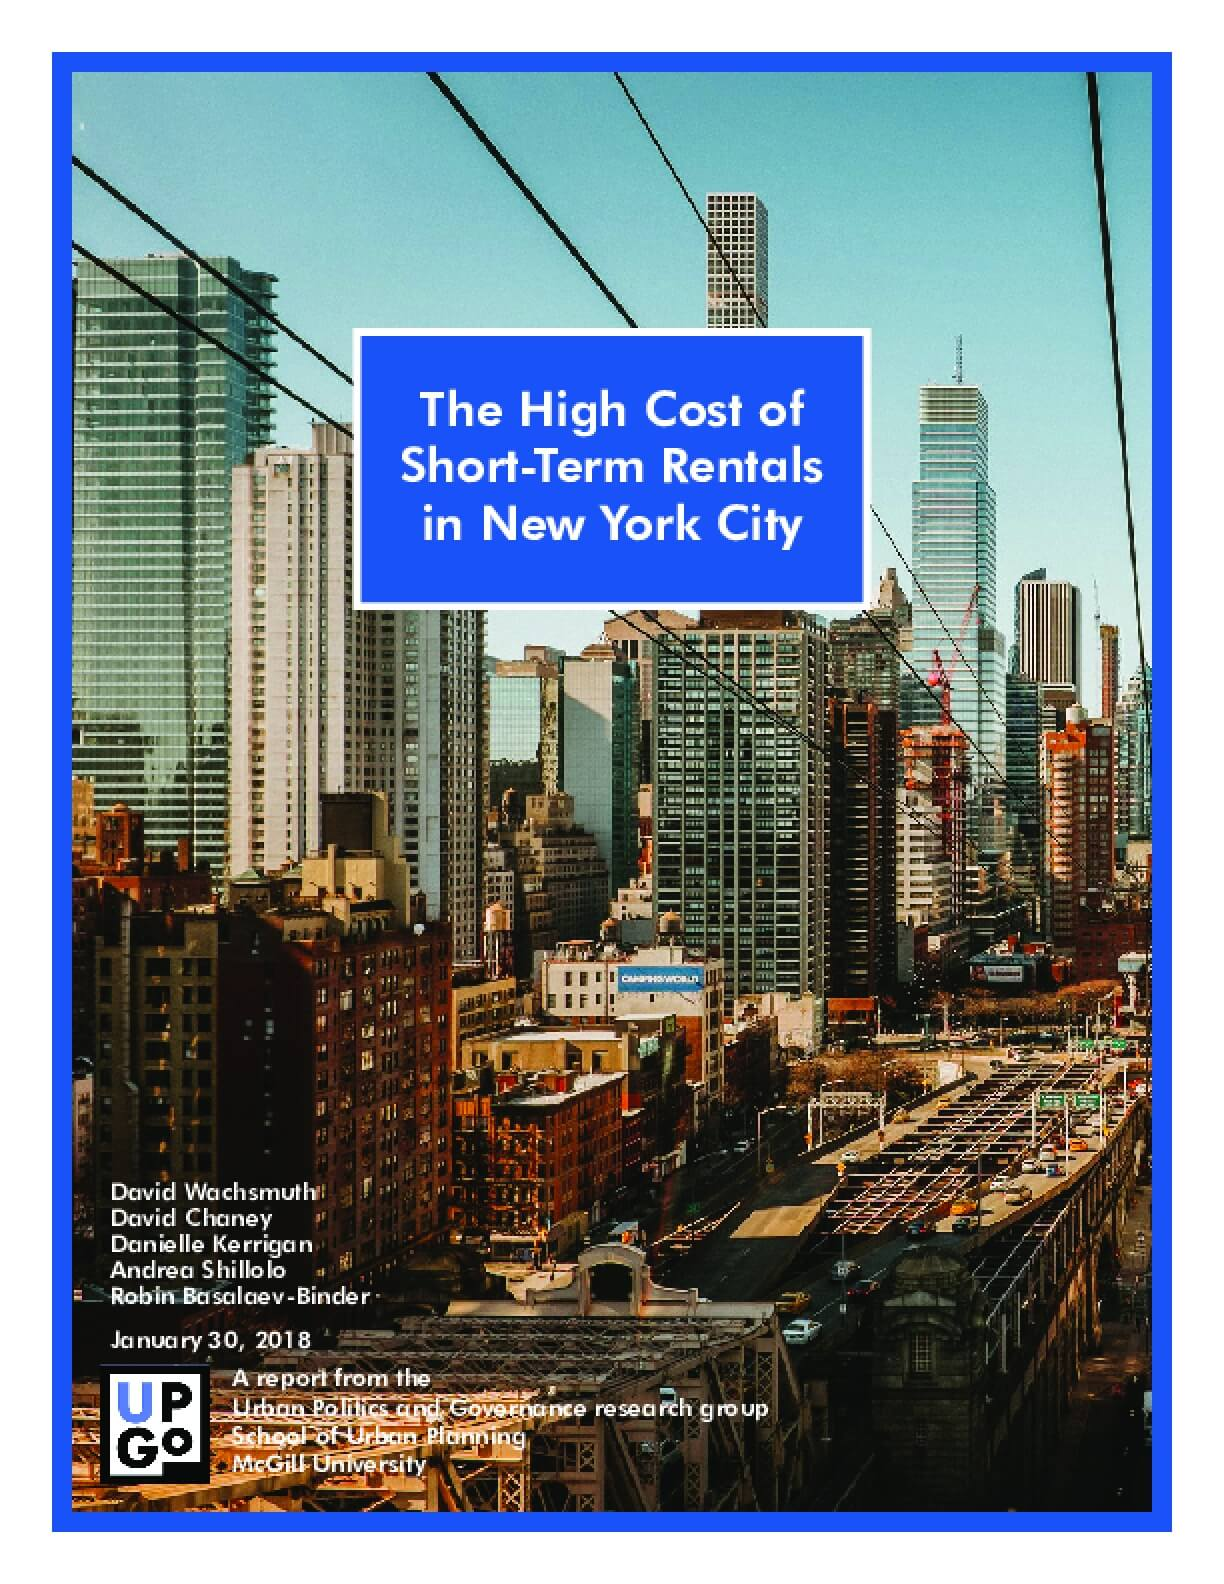 The High Cost of Short-Term Rental in New York City